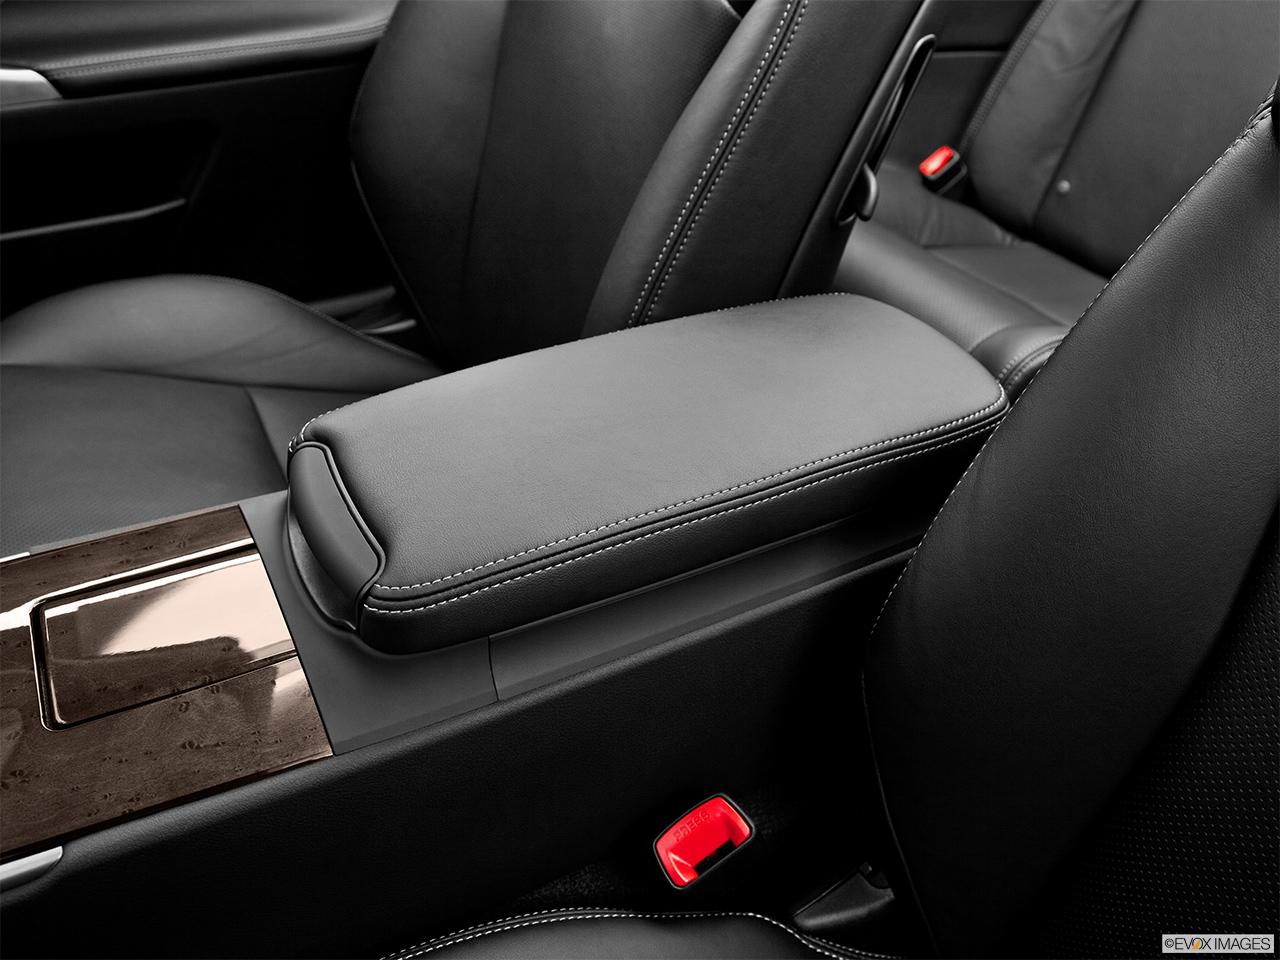 2013 Lexus IS 250C IS 250 C RWD Front center console with closed lid, from driver's side looking down